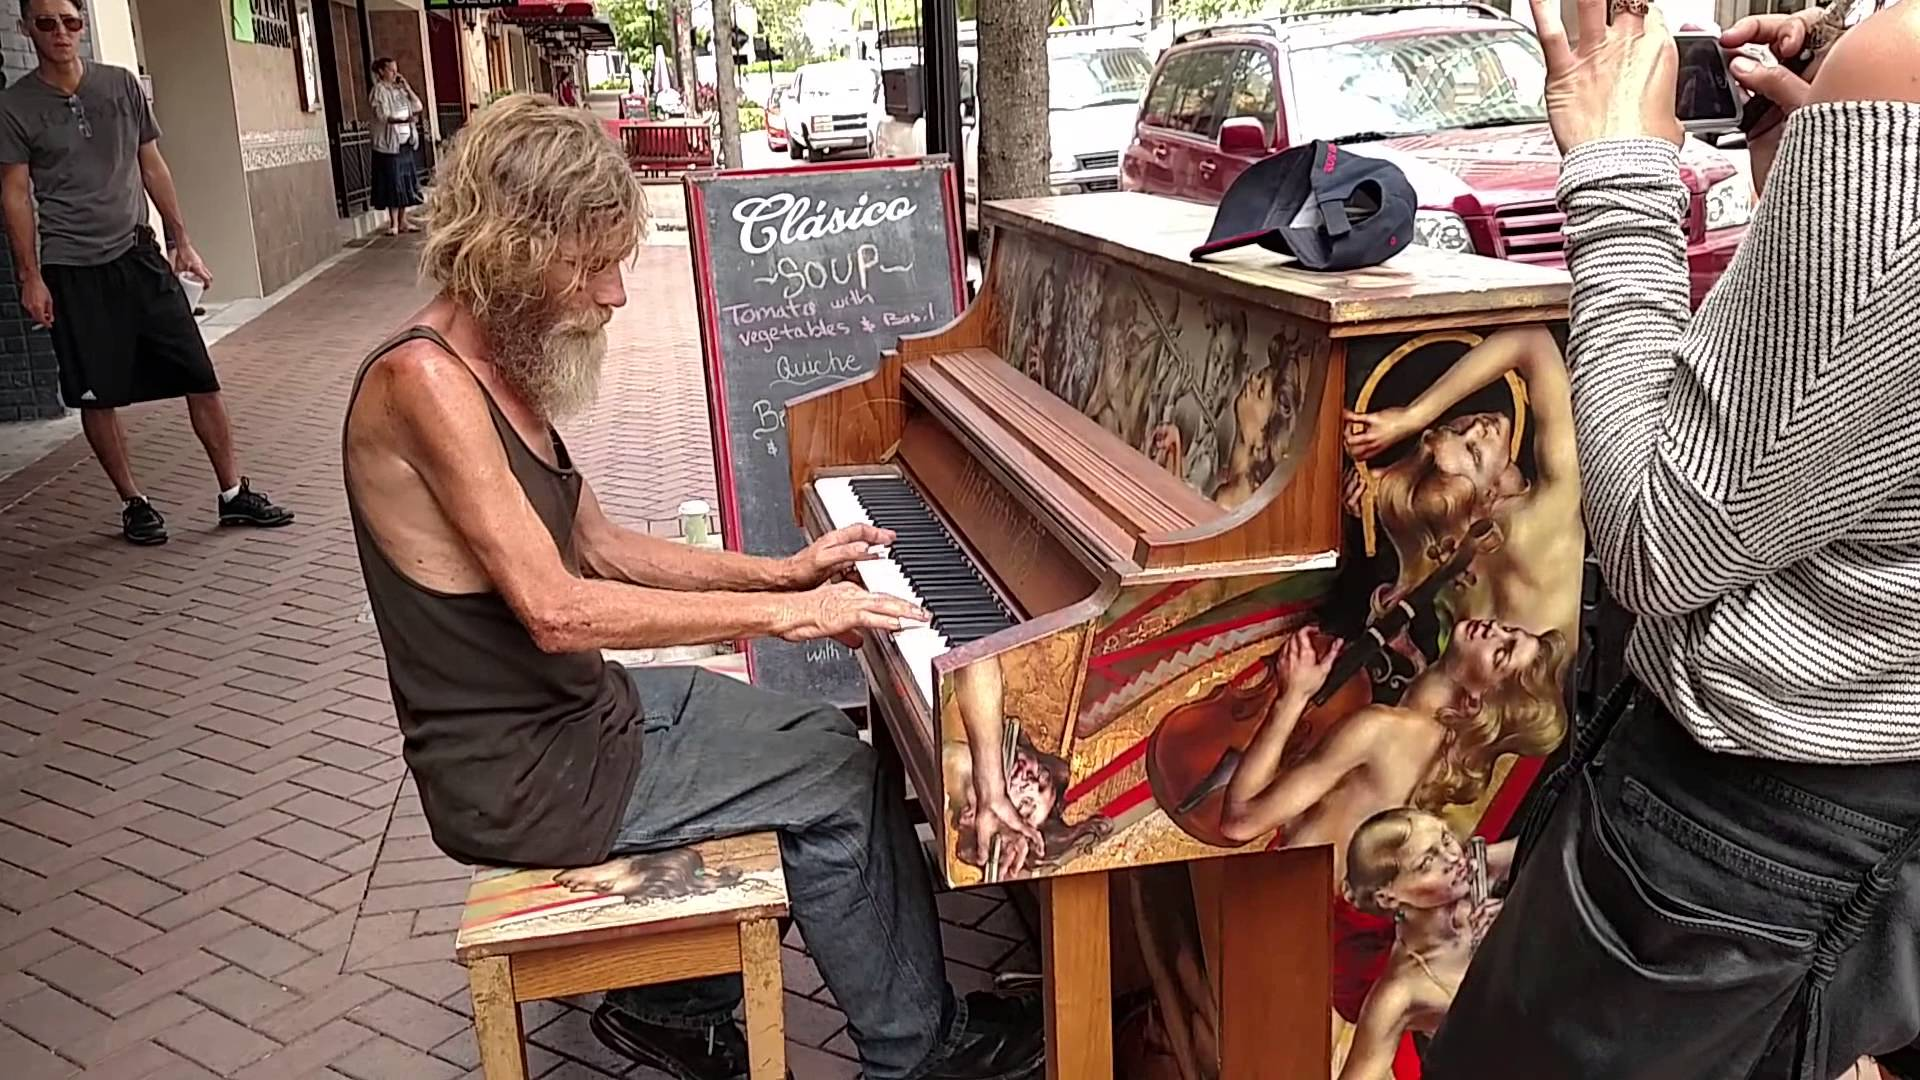 Homeless Man in Sarasota, Florida is a Piano Virtuoso